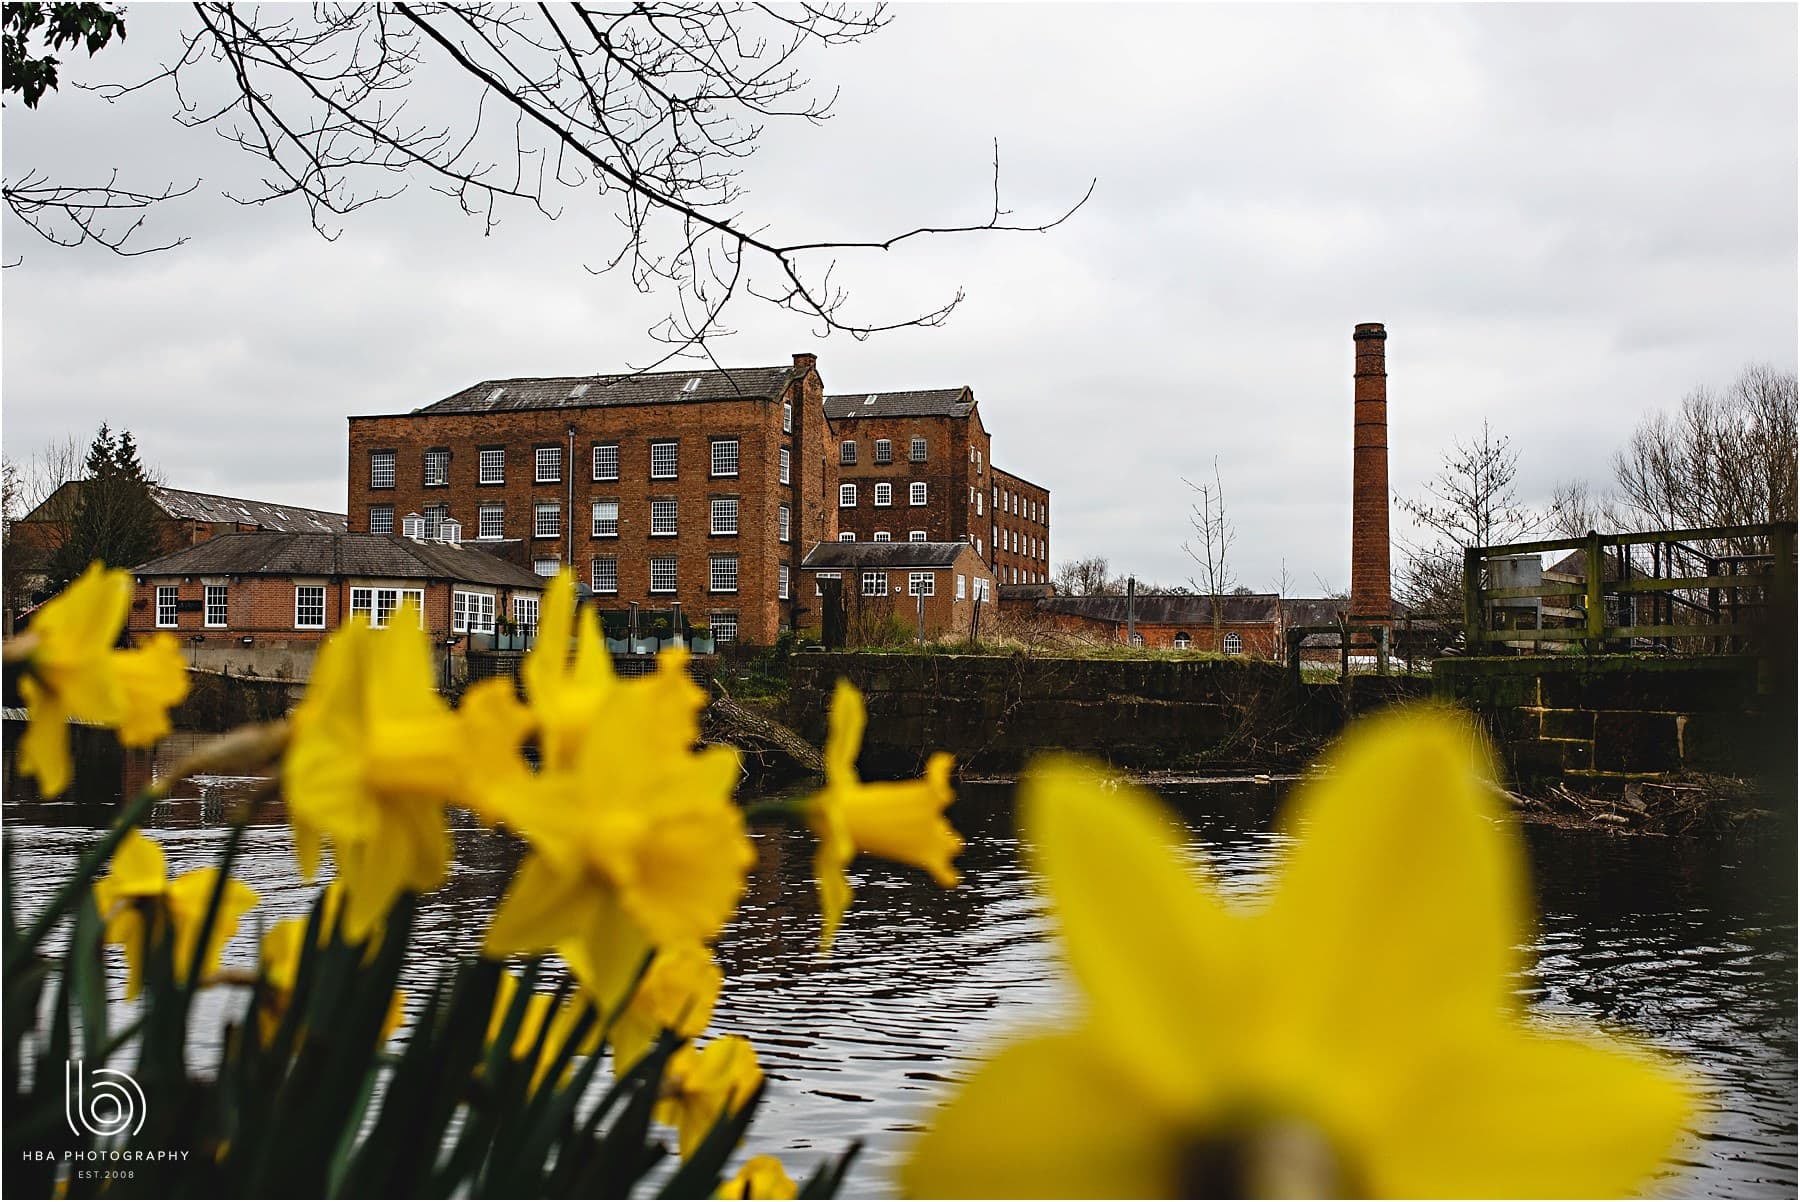 The West Mill in Spring